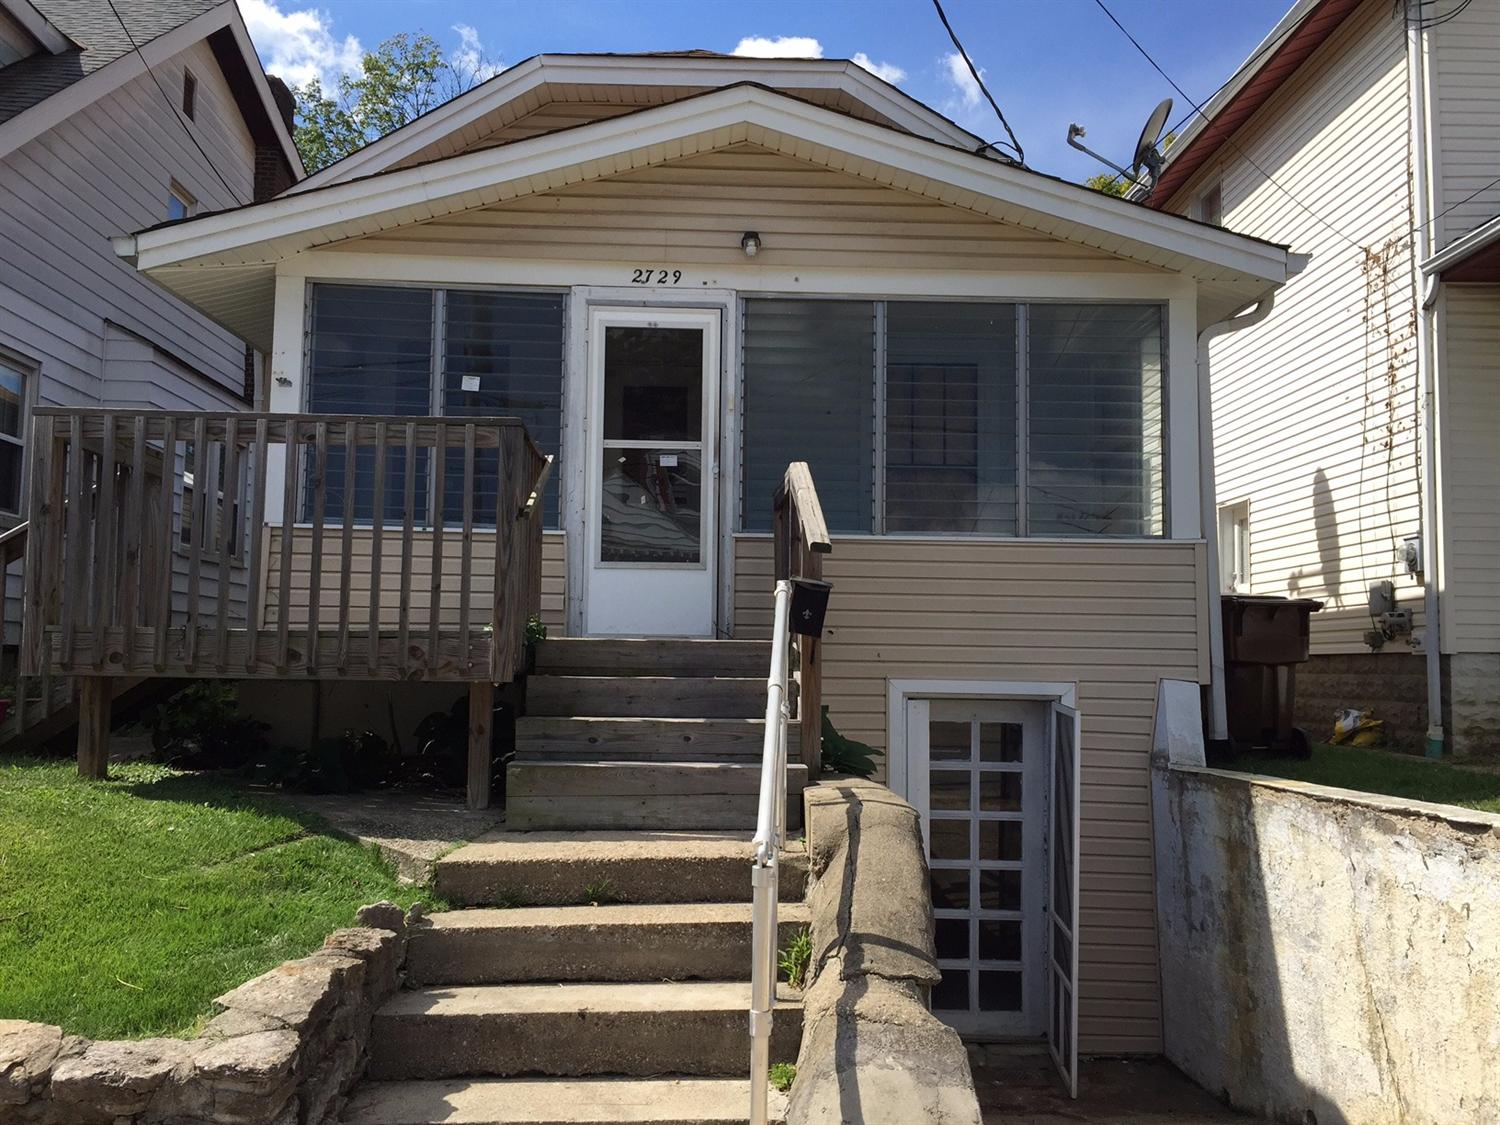 Photo 1 for 2729 Alexandria Blvd Latonia, KY 41015